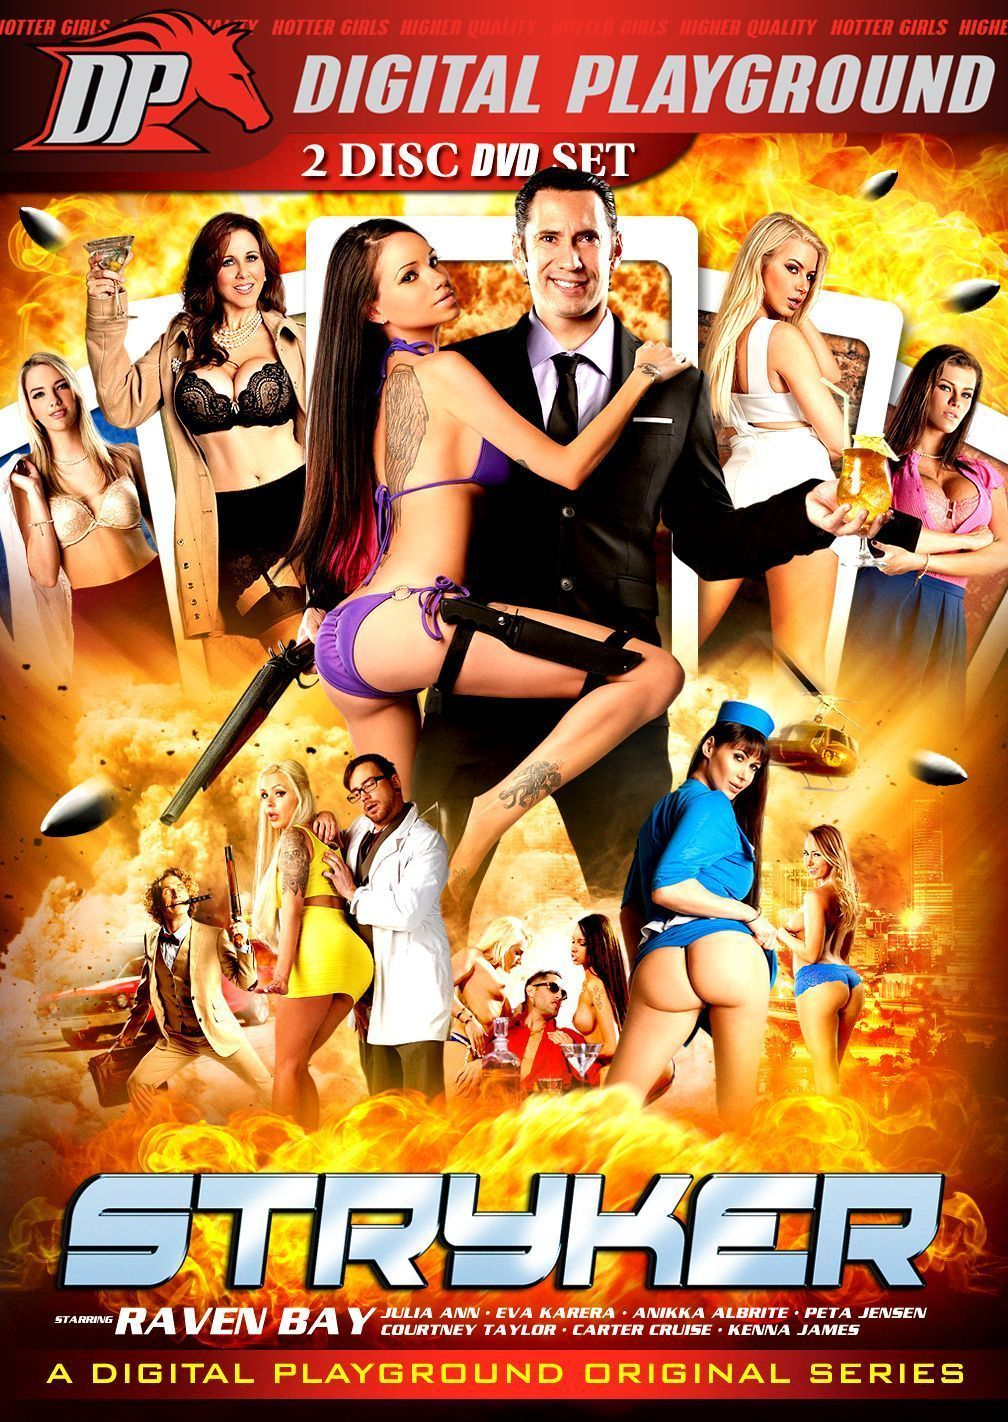 Ump reccomend Digital playground porn movie